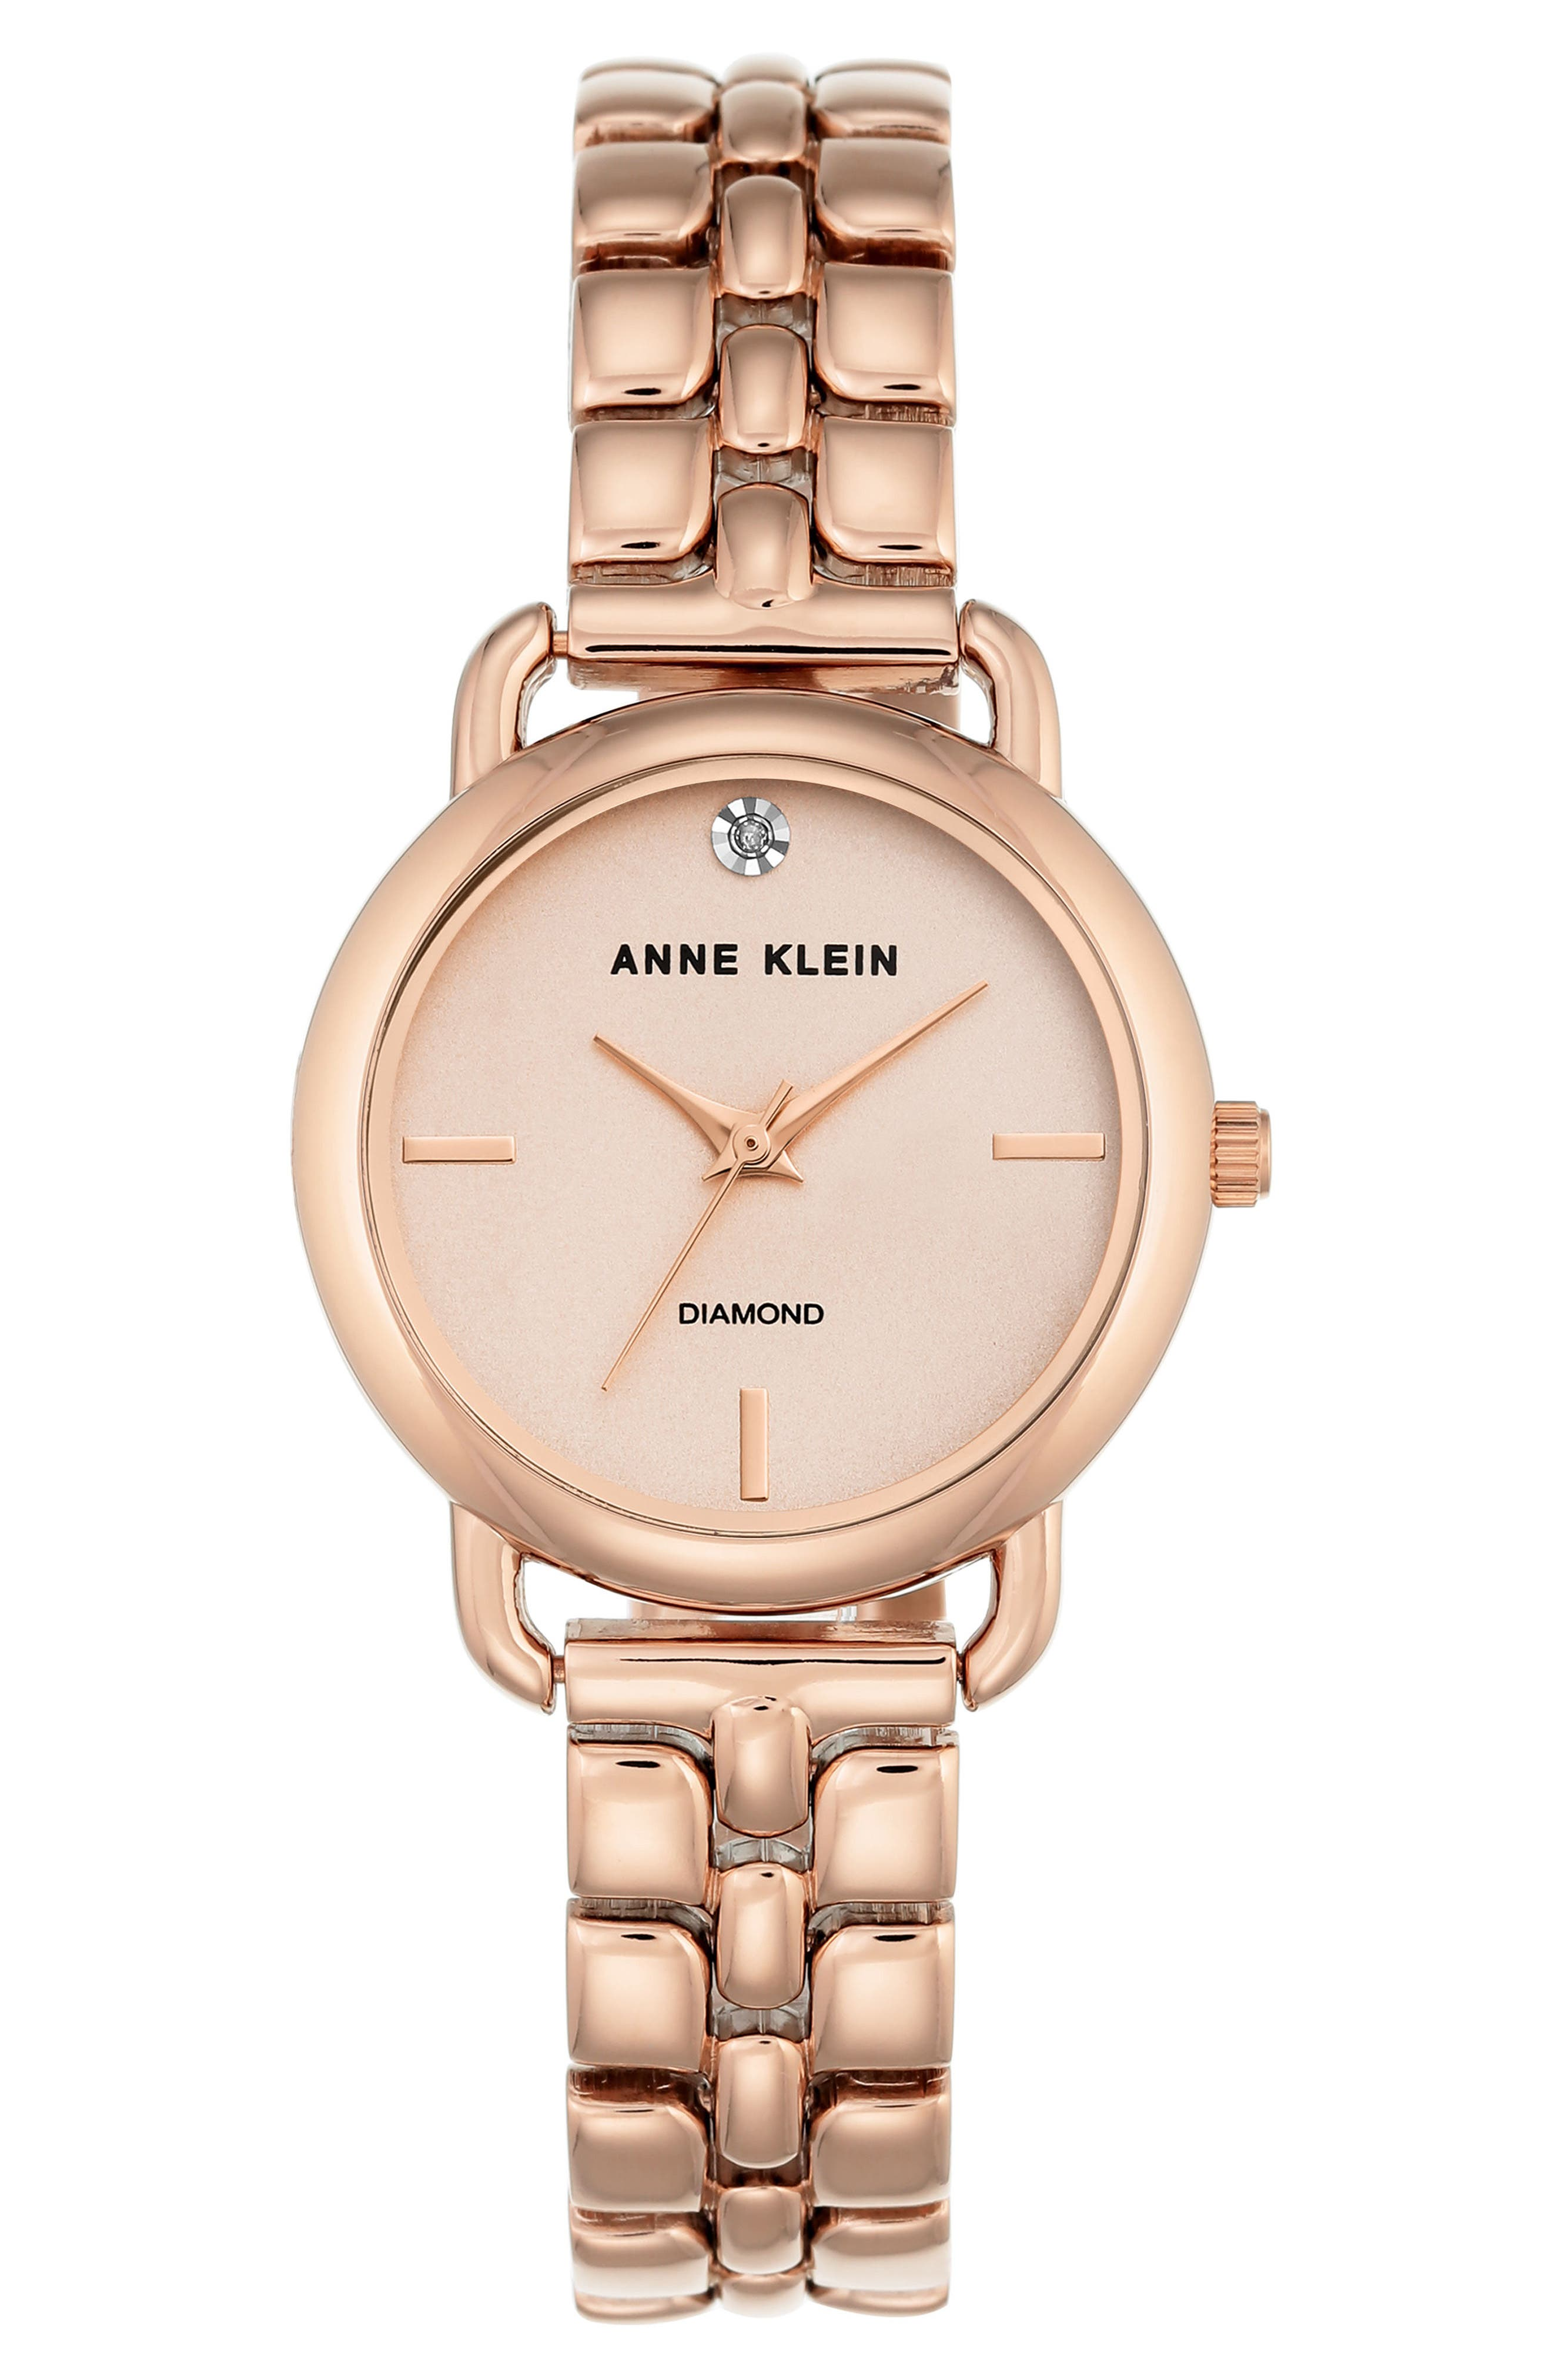 Main Image - Anne Klein Diamond Bracelet Watch, 30mm